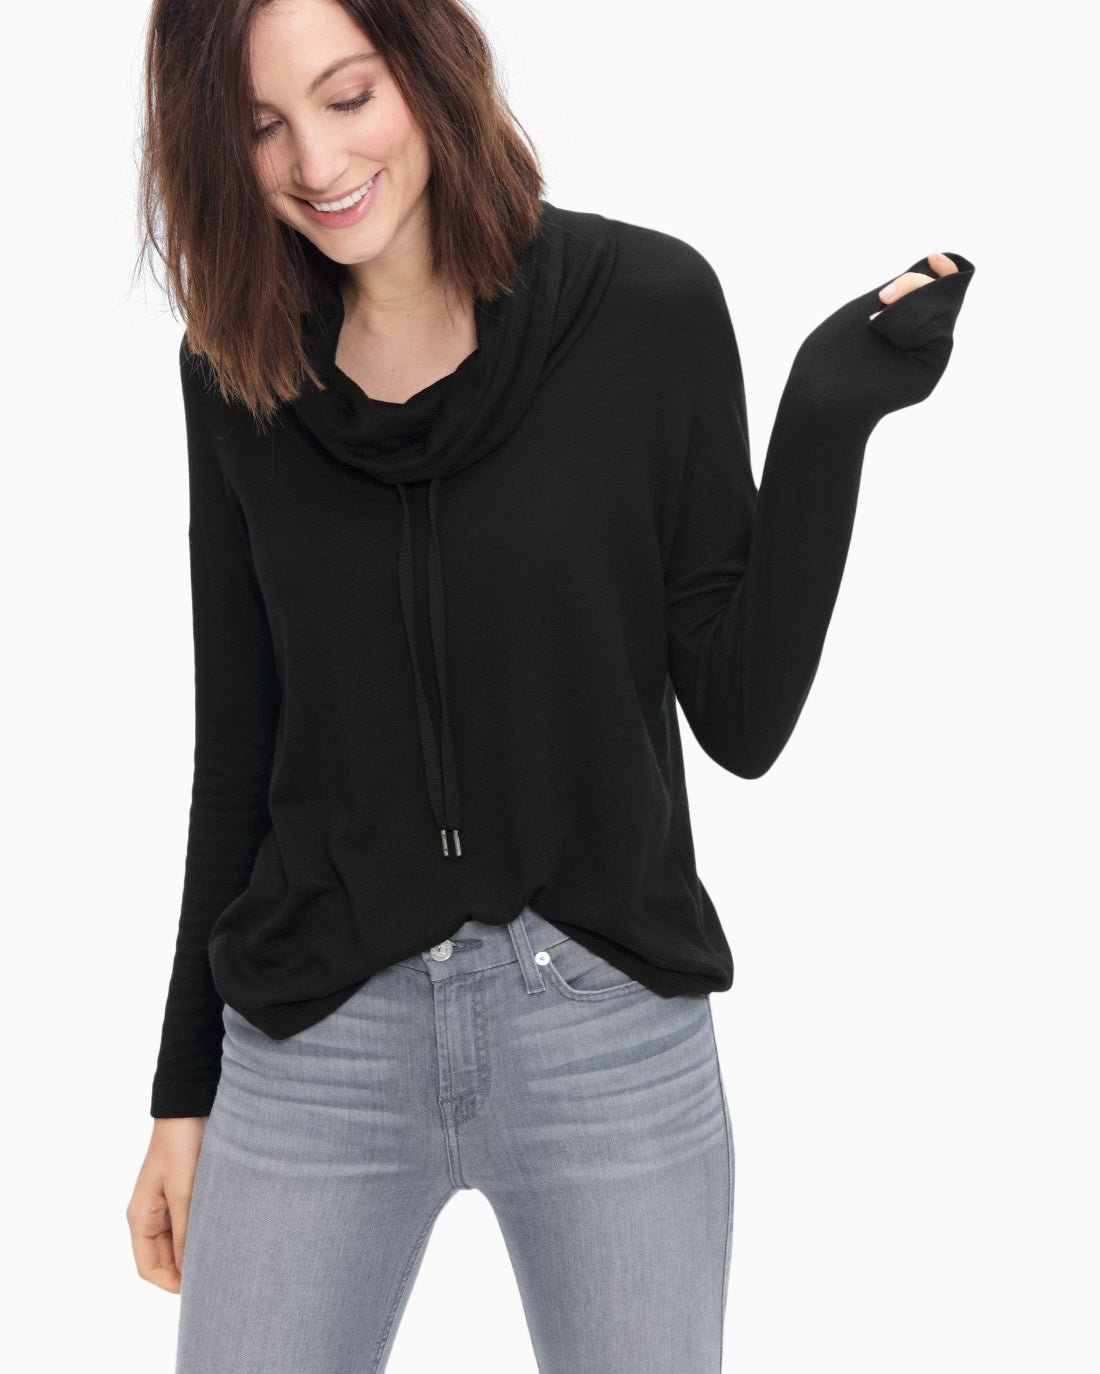 Splendid Women's Super Soft Brushed French Terry Cowl Neck Pullover